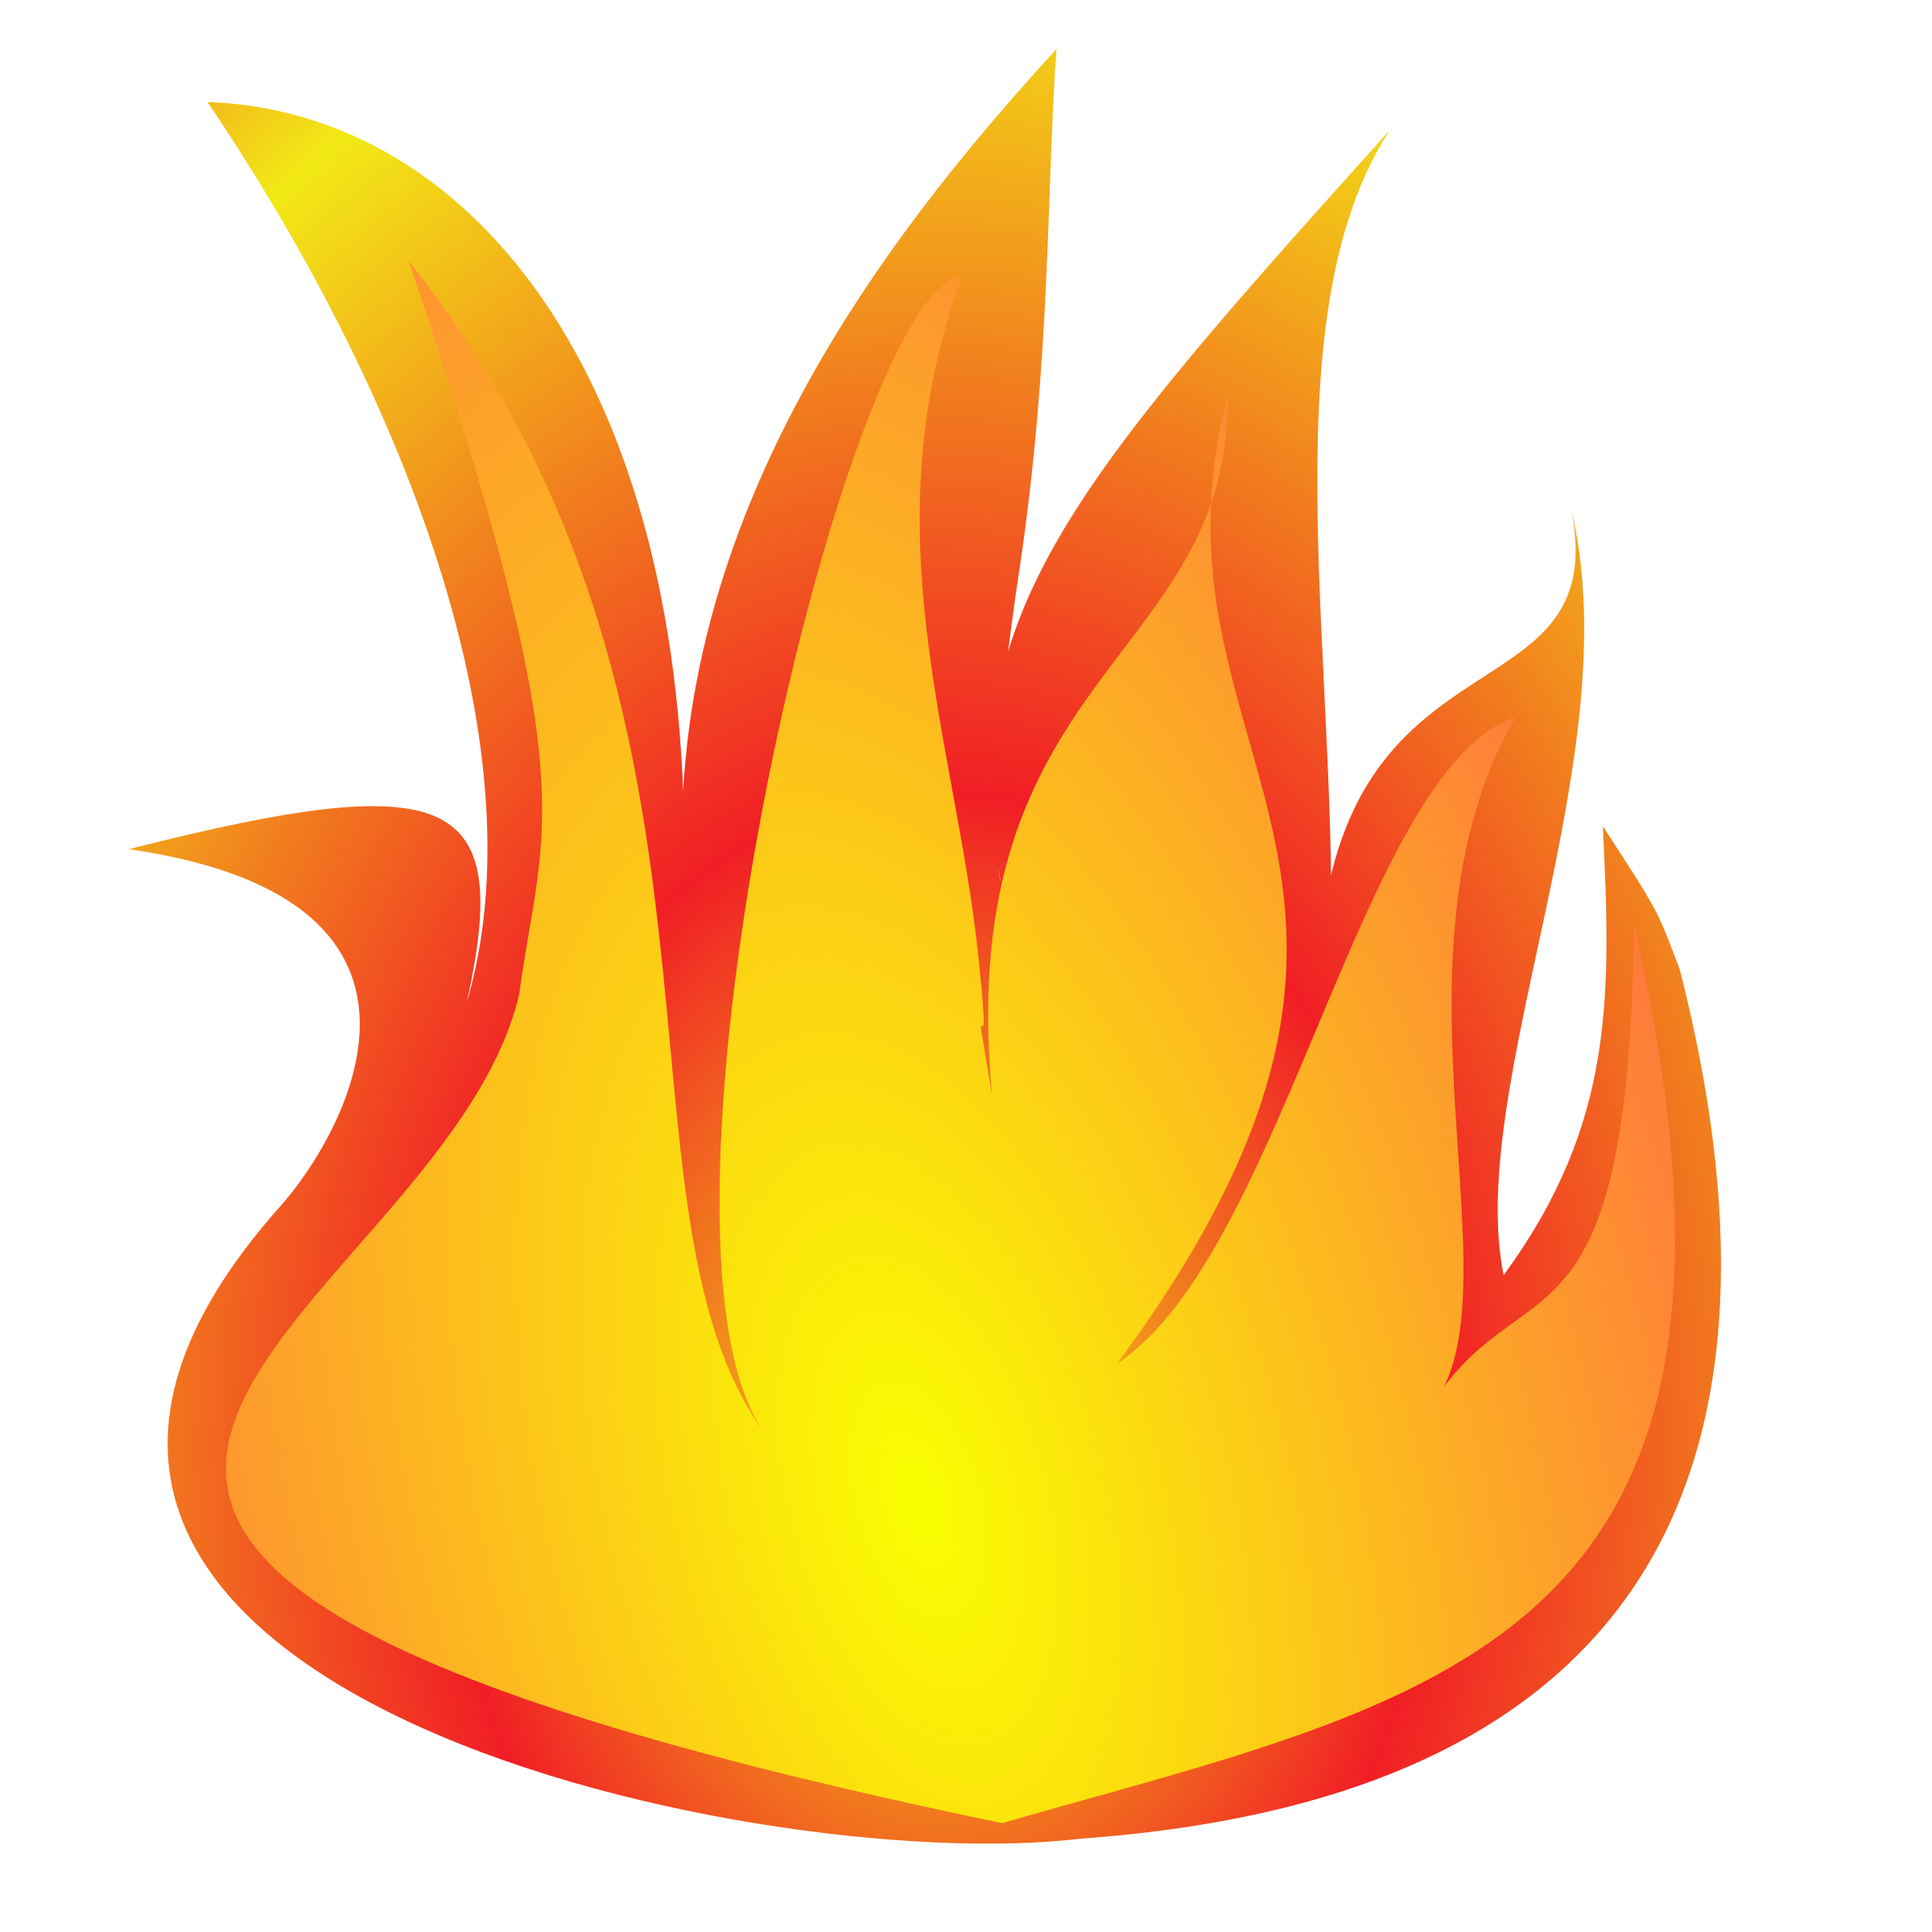 Flame clip art vector flame graphics clipart me 2